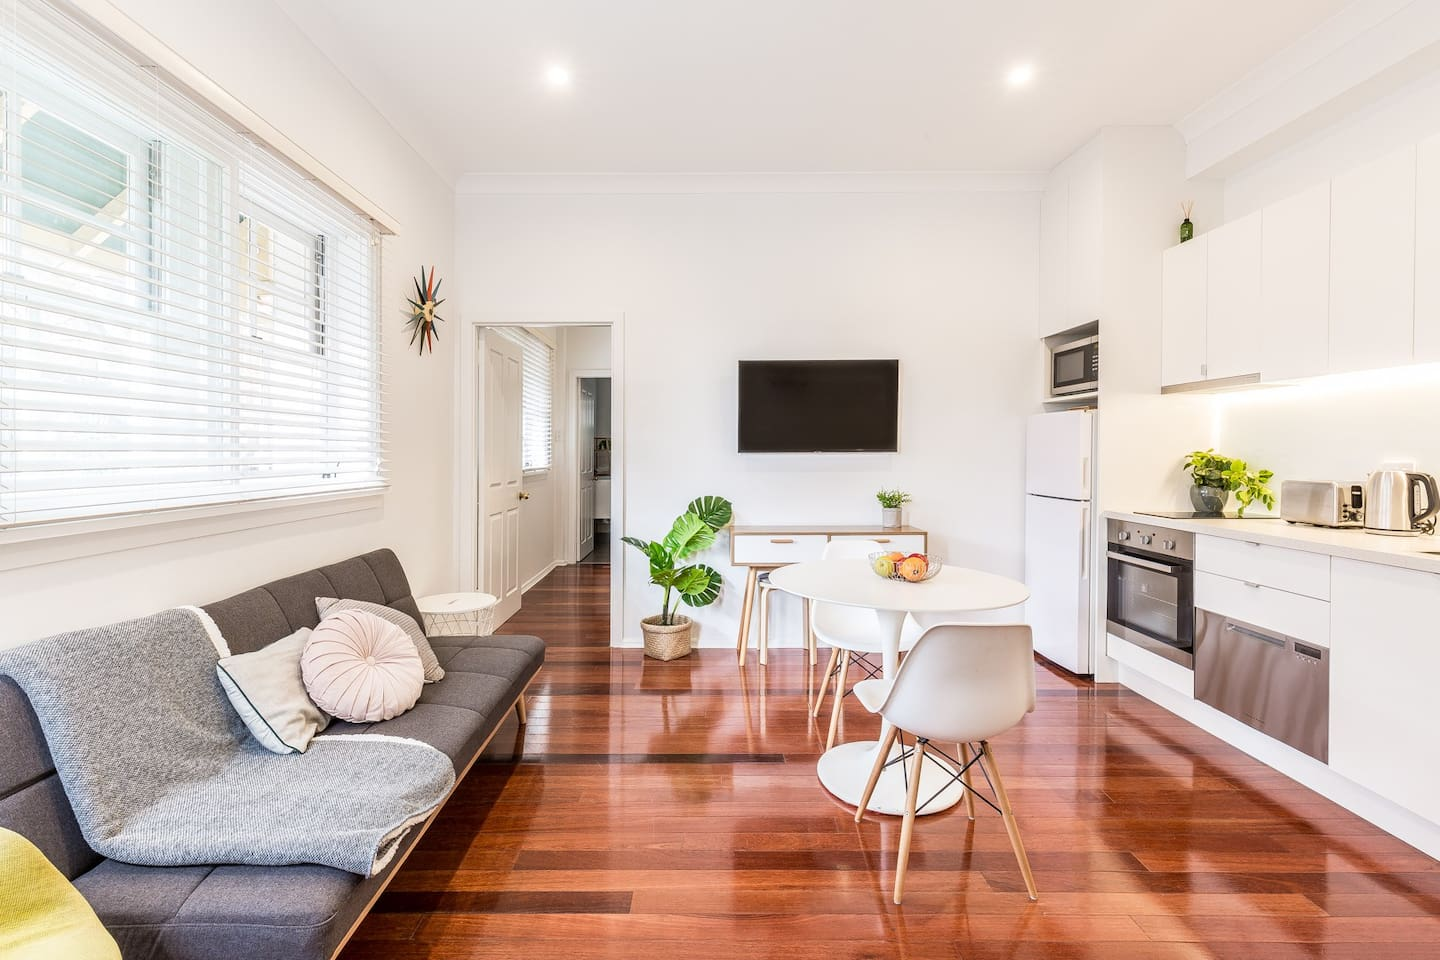 A newly renovated apartment in the heart of Potts Point. Completed in June 2019.